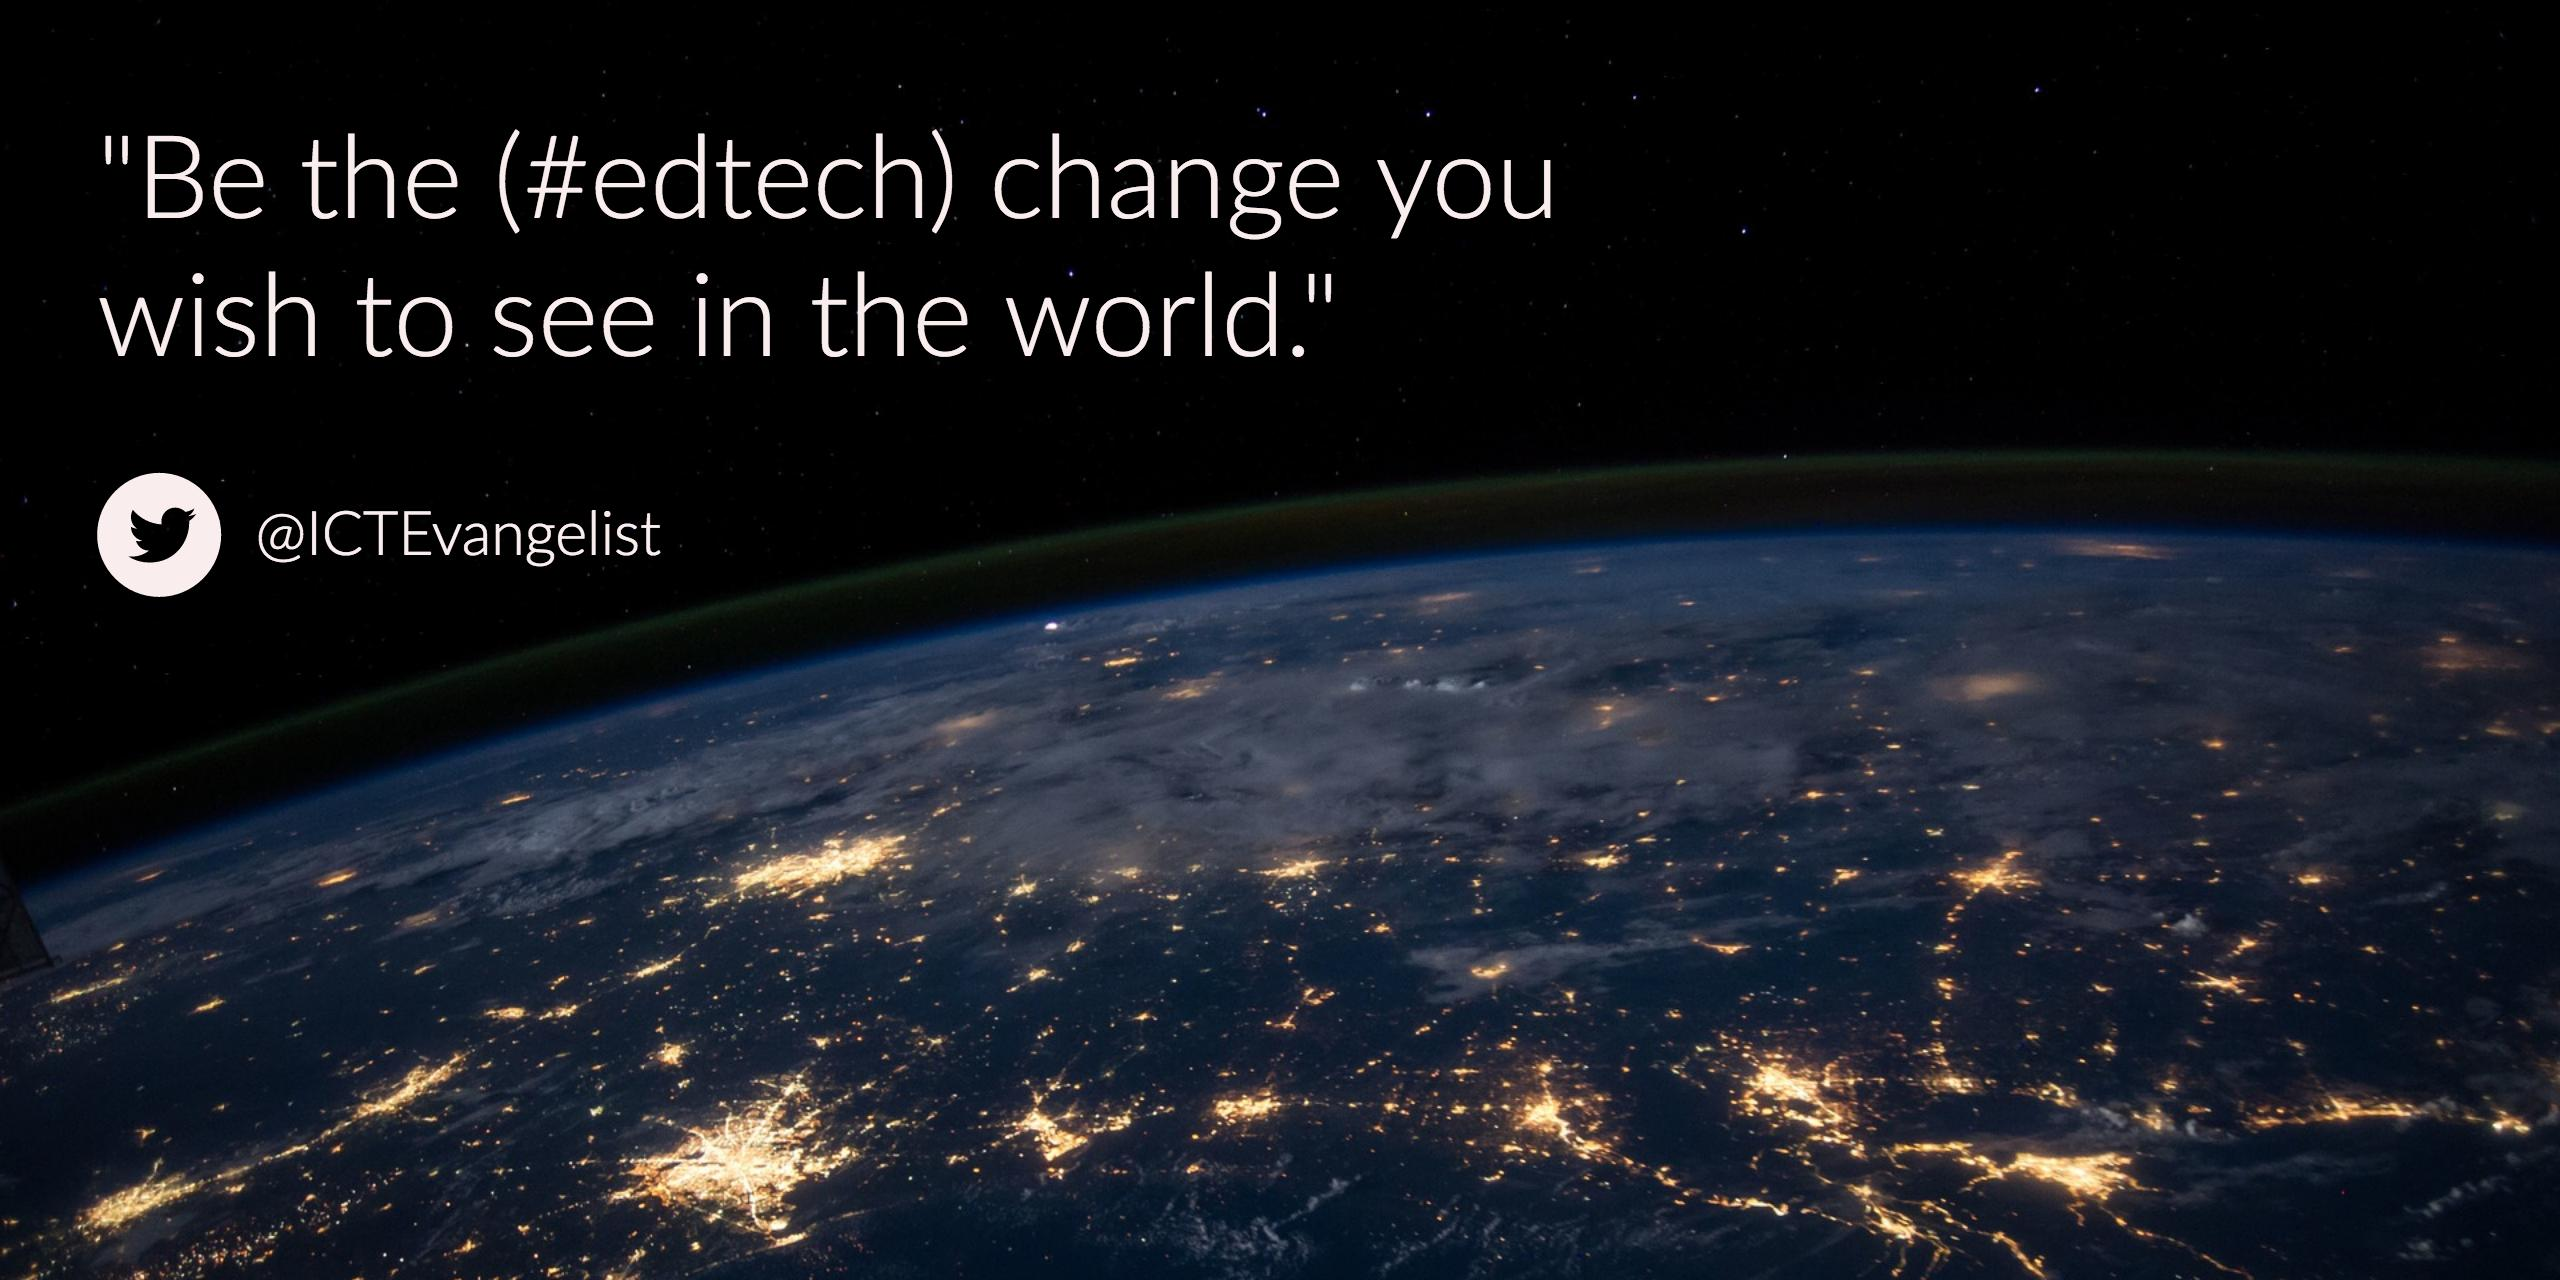 Be the (#edtech) change – ICTEvangelist